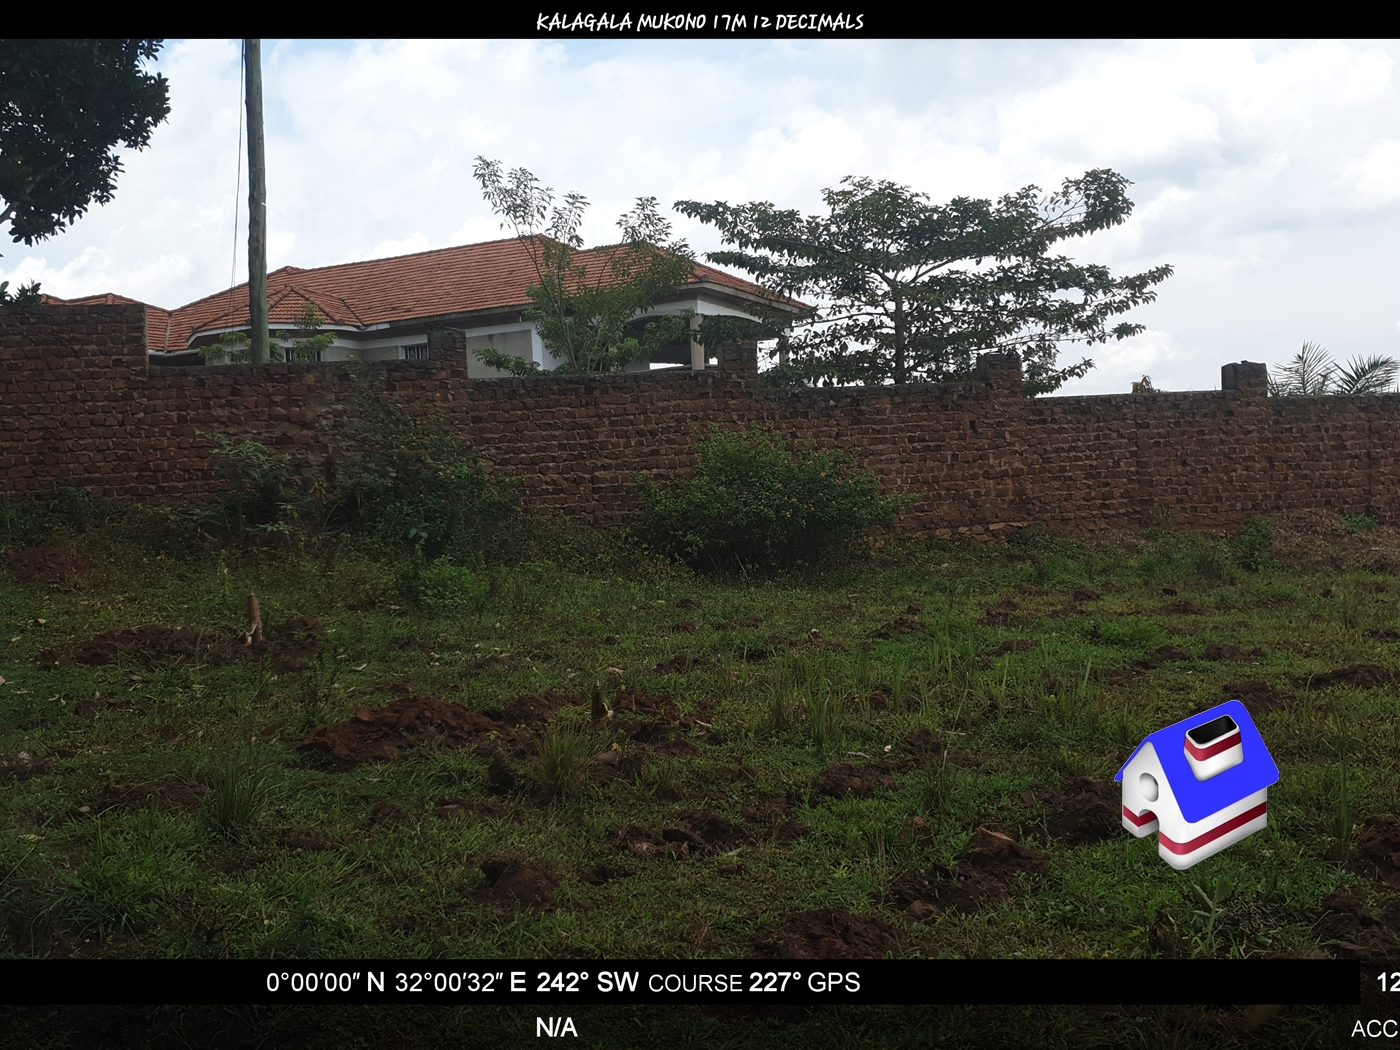 Residential Land for sale in Kalagala Mukono